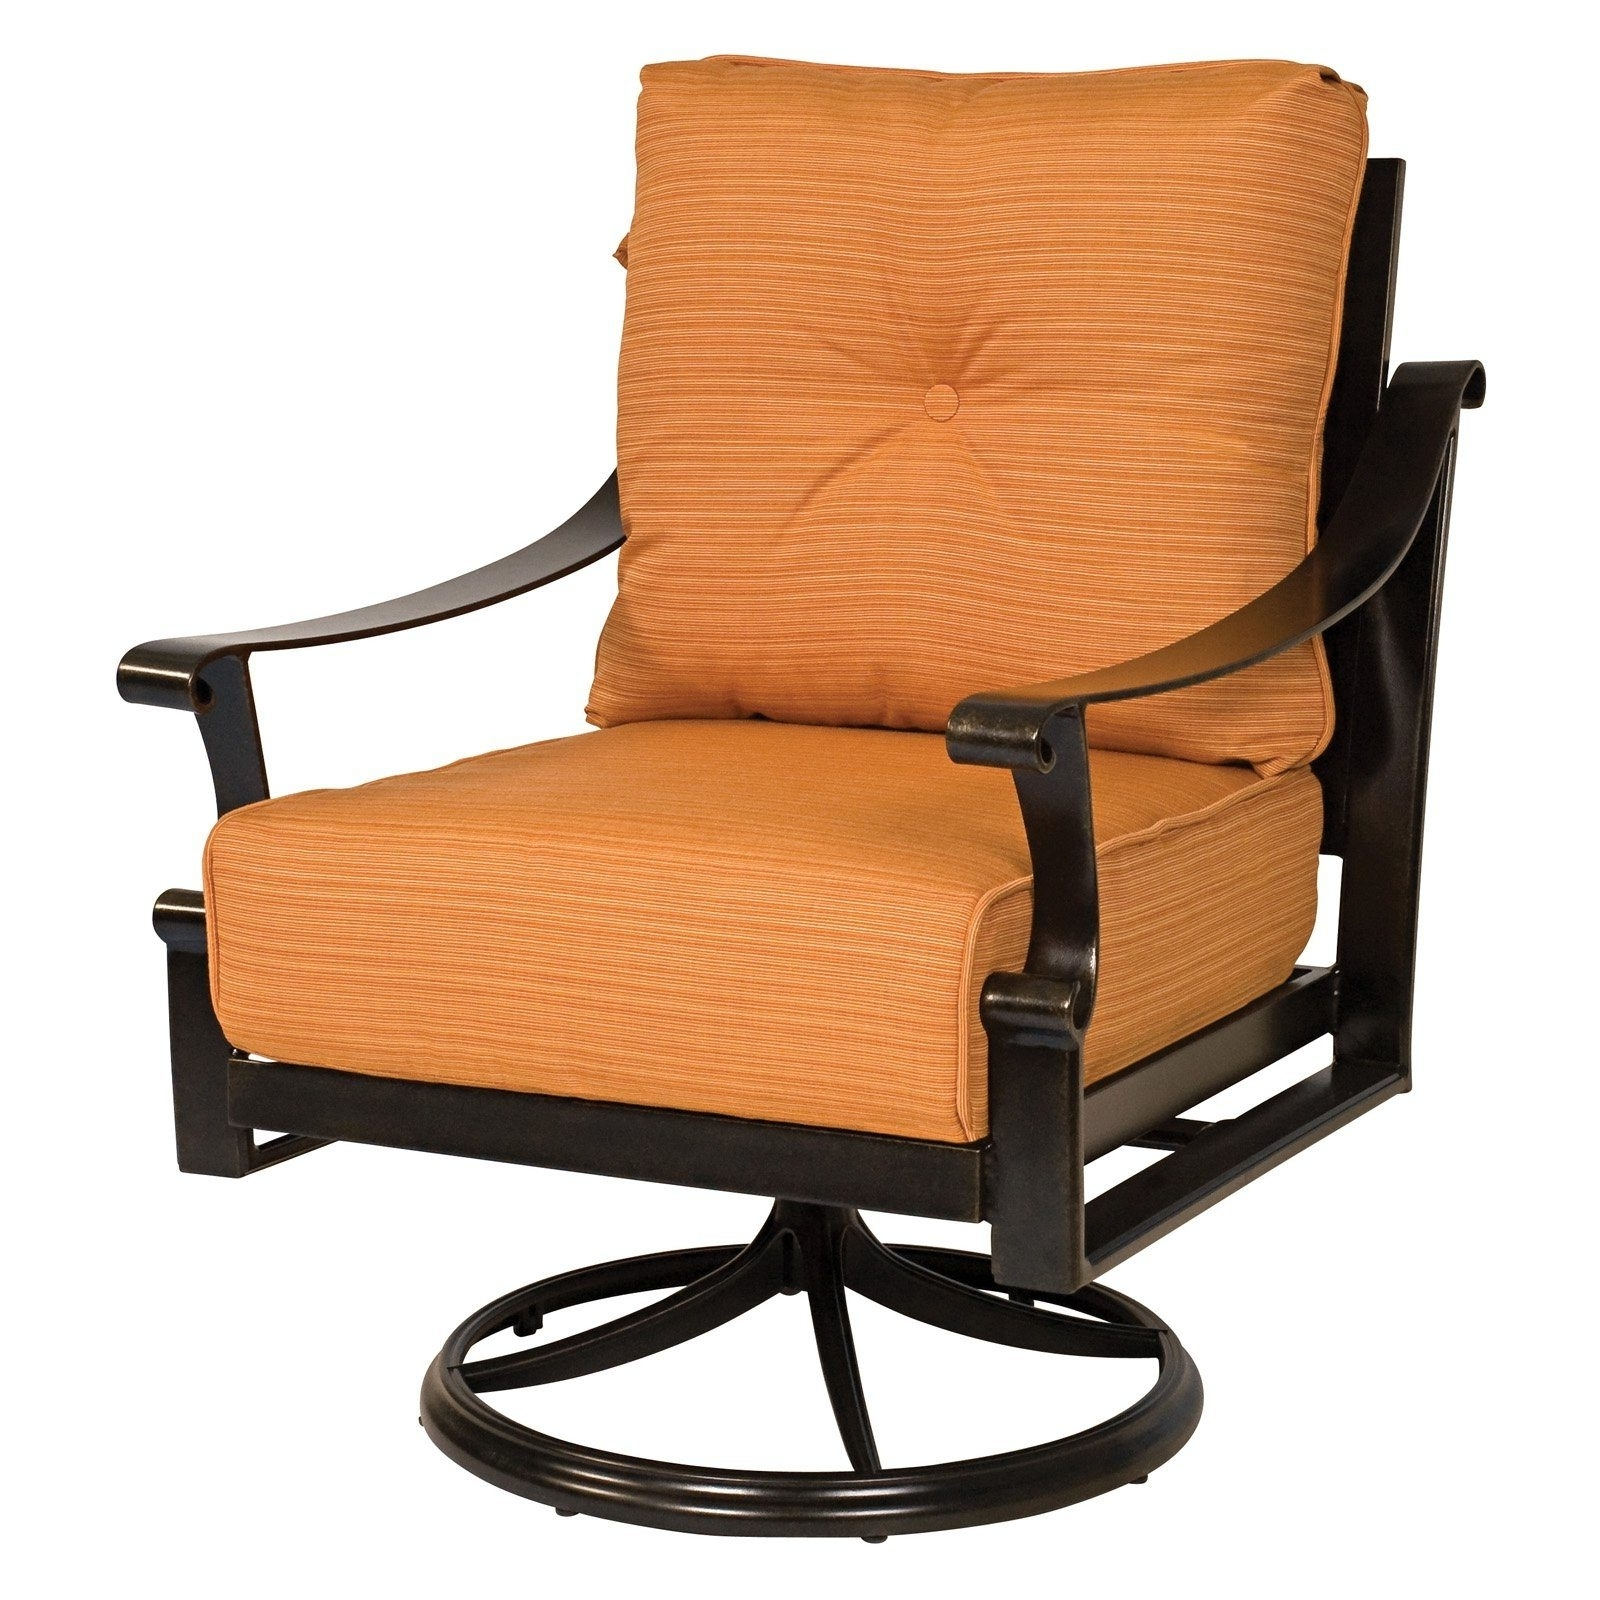 Amazing Of Swivel Rocking Patio Chairs Swivel Rocker Patio Furniture Pertaining To Most Up To Date Patio Rocking Chairs With Covers (View 10 of 15)